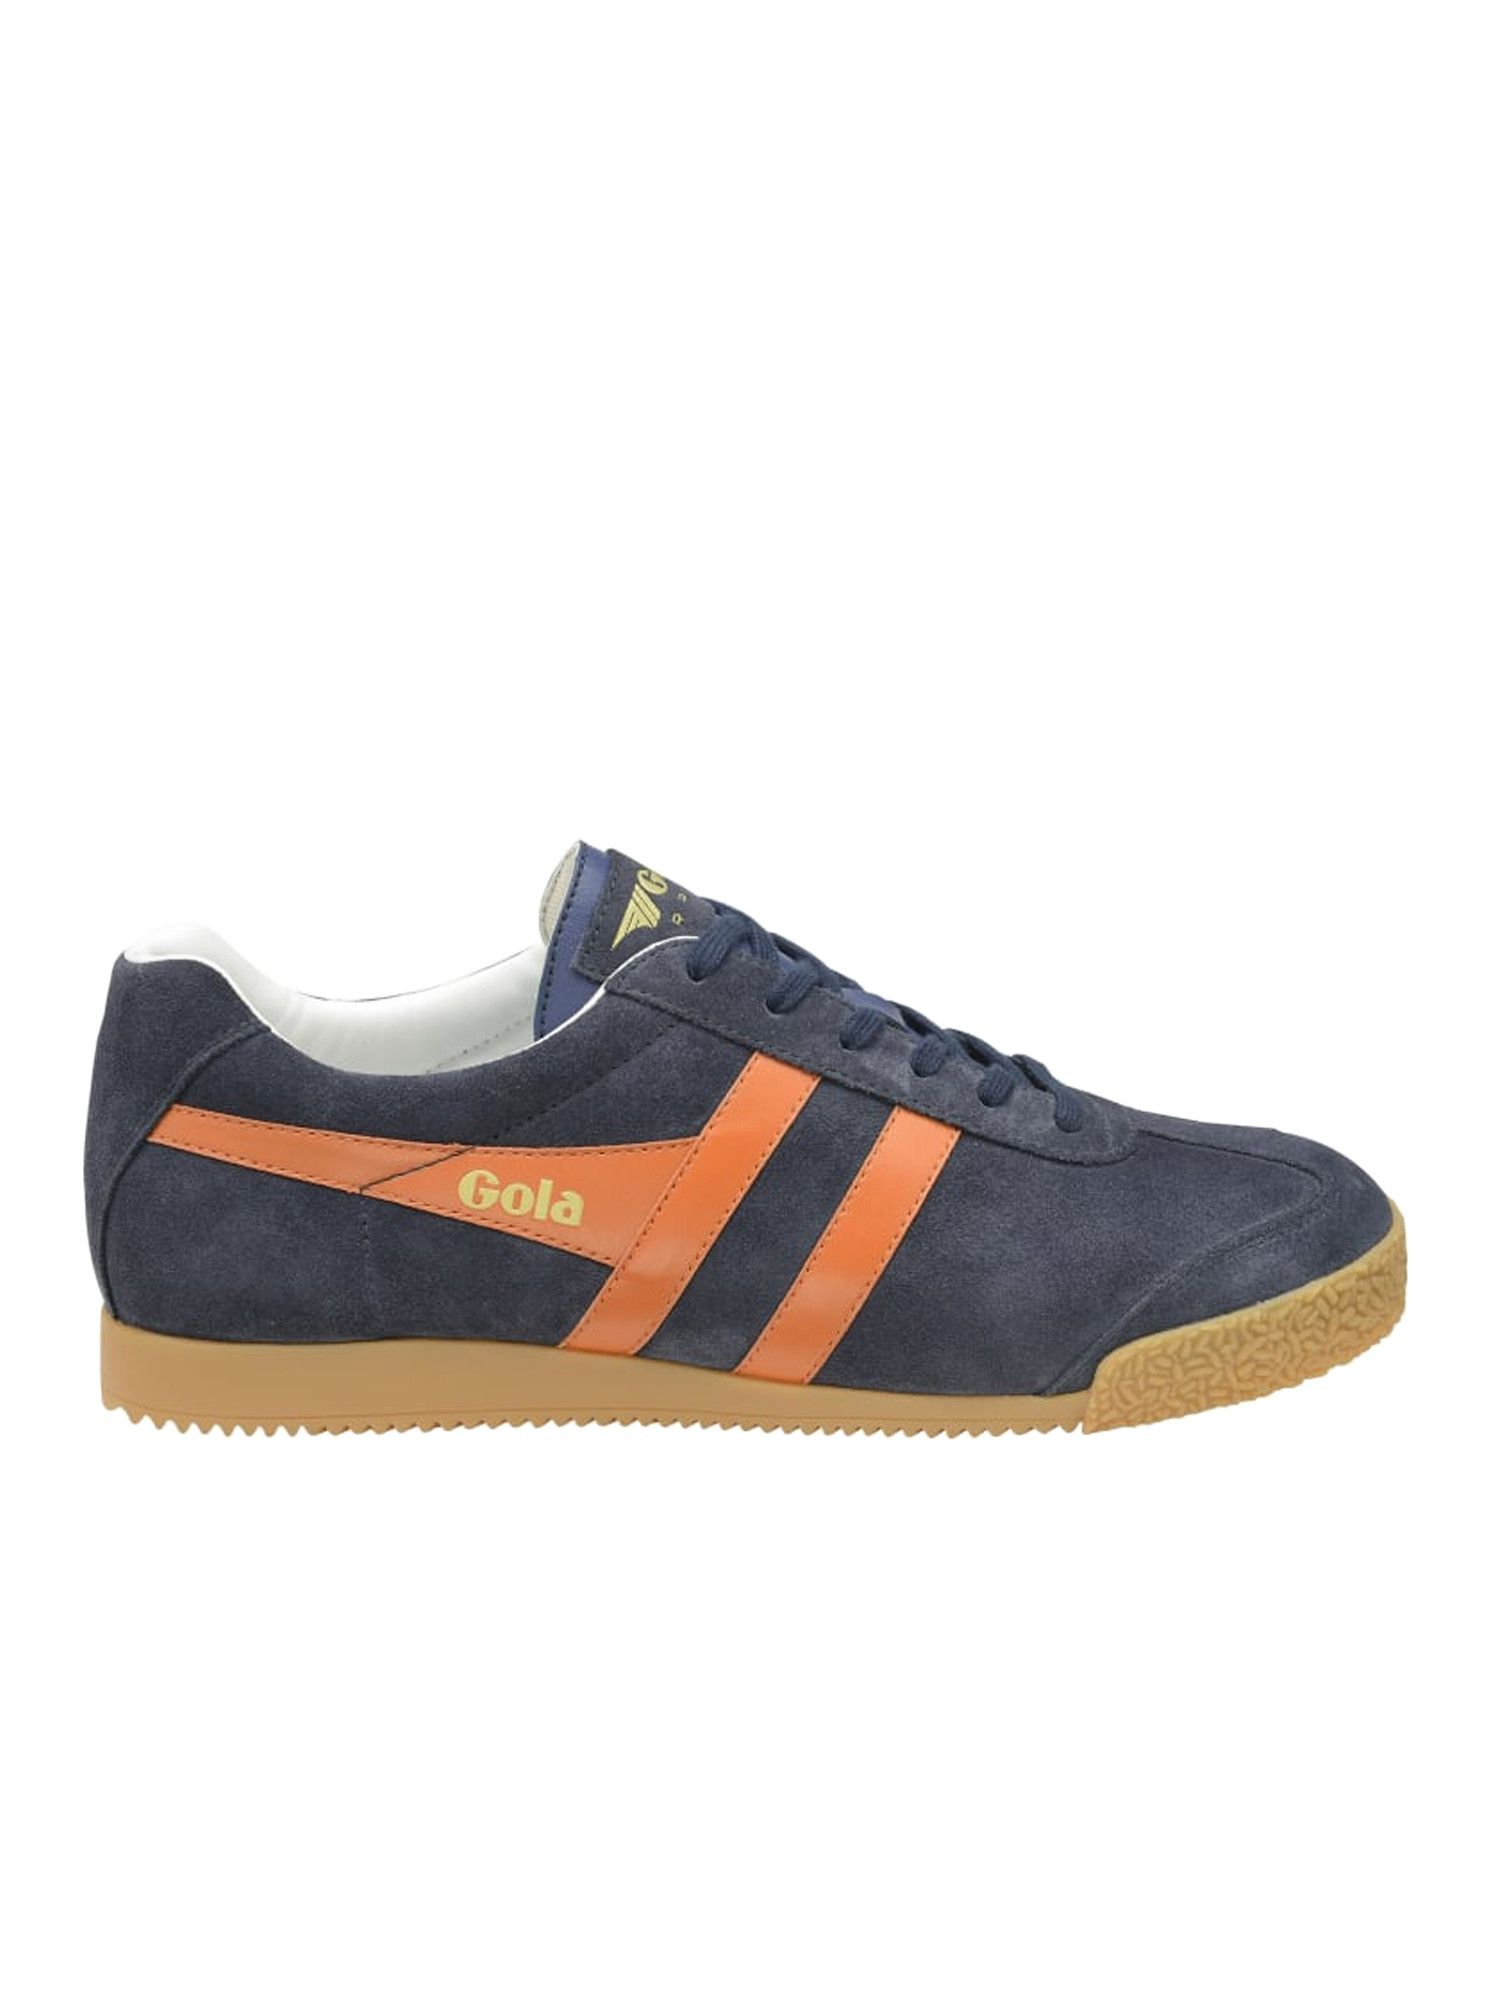 GOLA Harrier Suede Trainers in NAVY ORANGE OFFWHITE